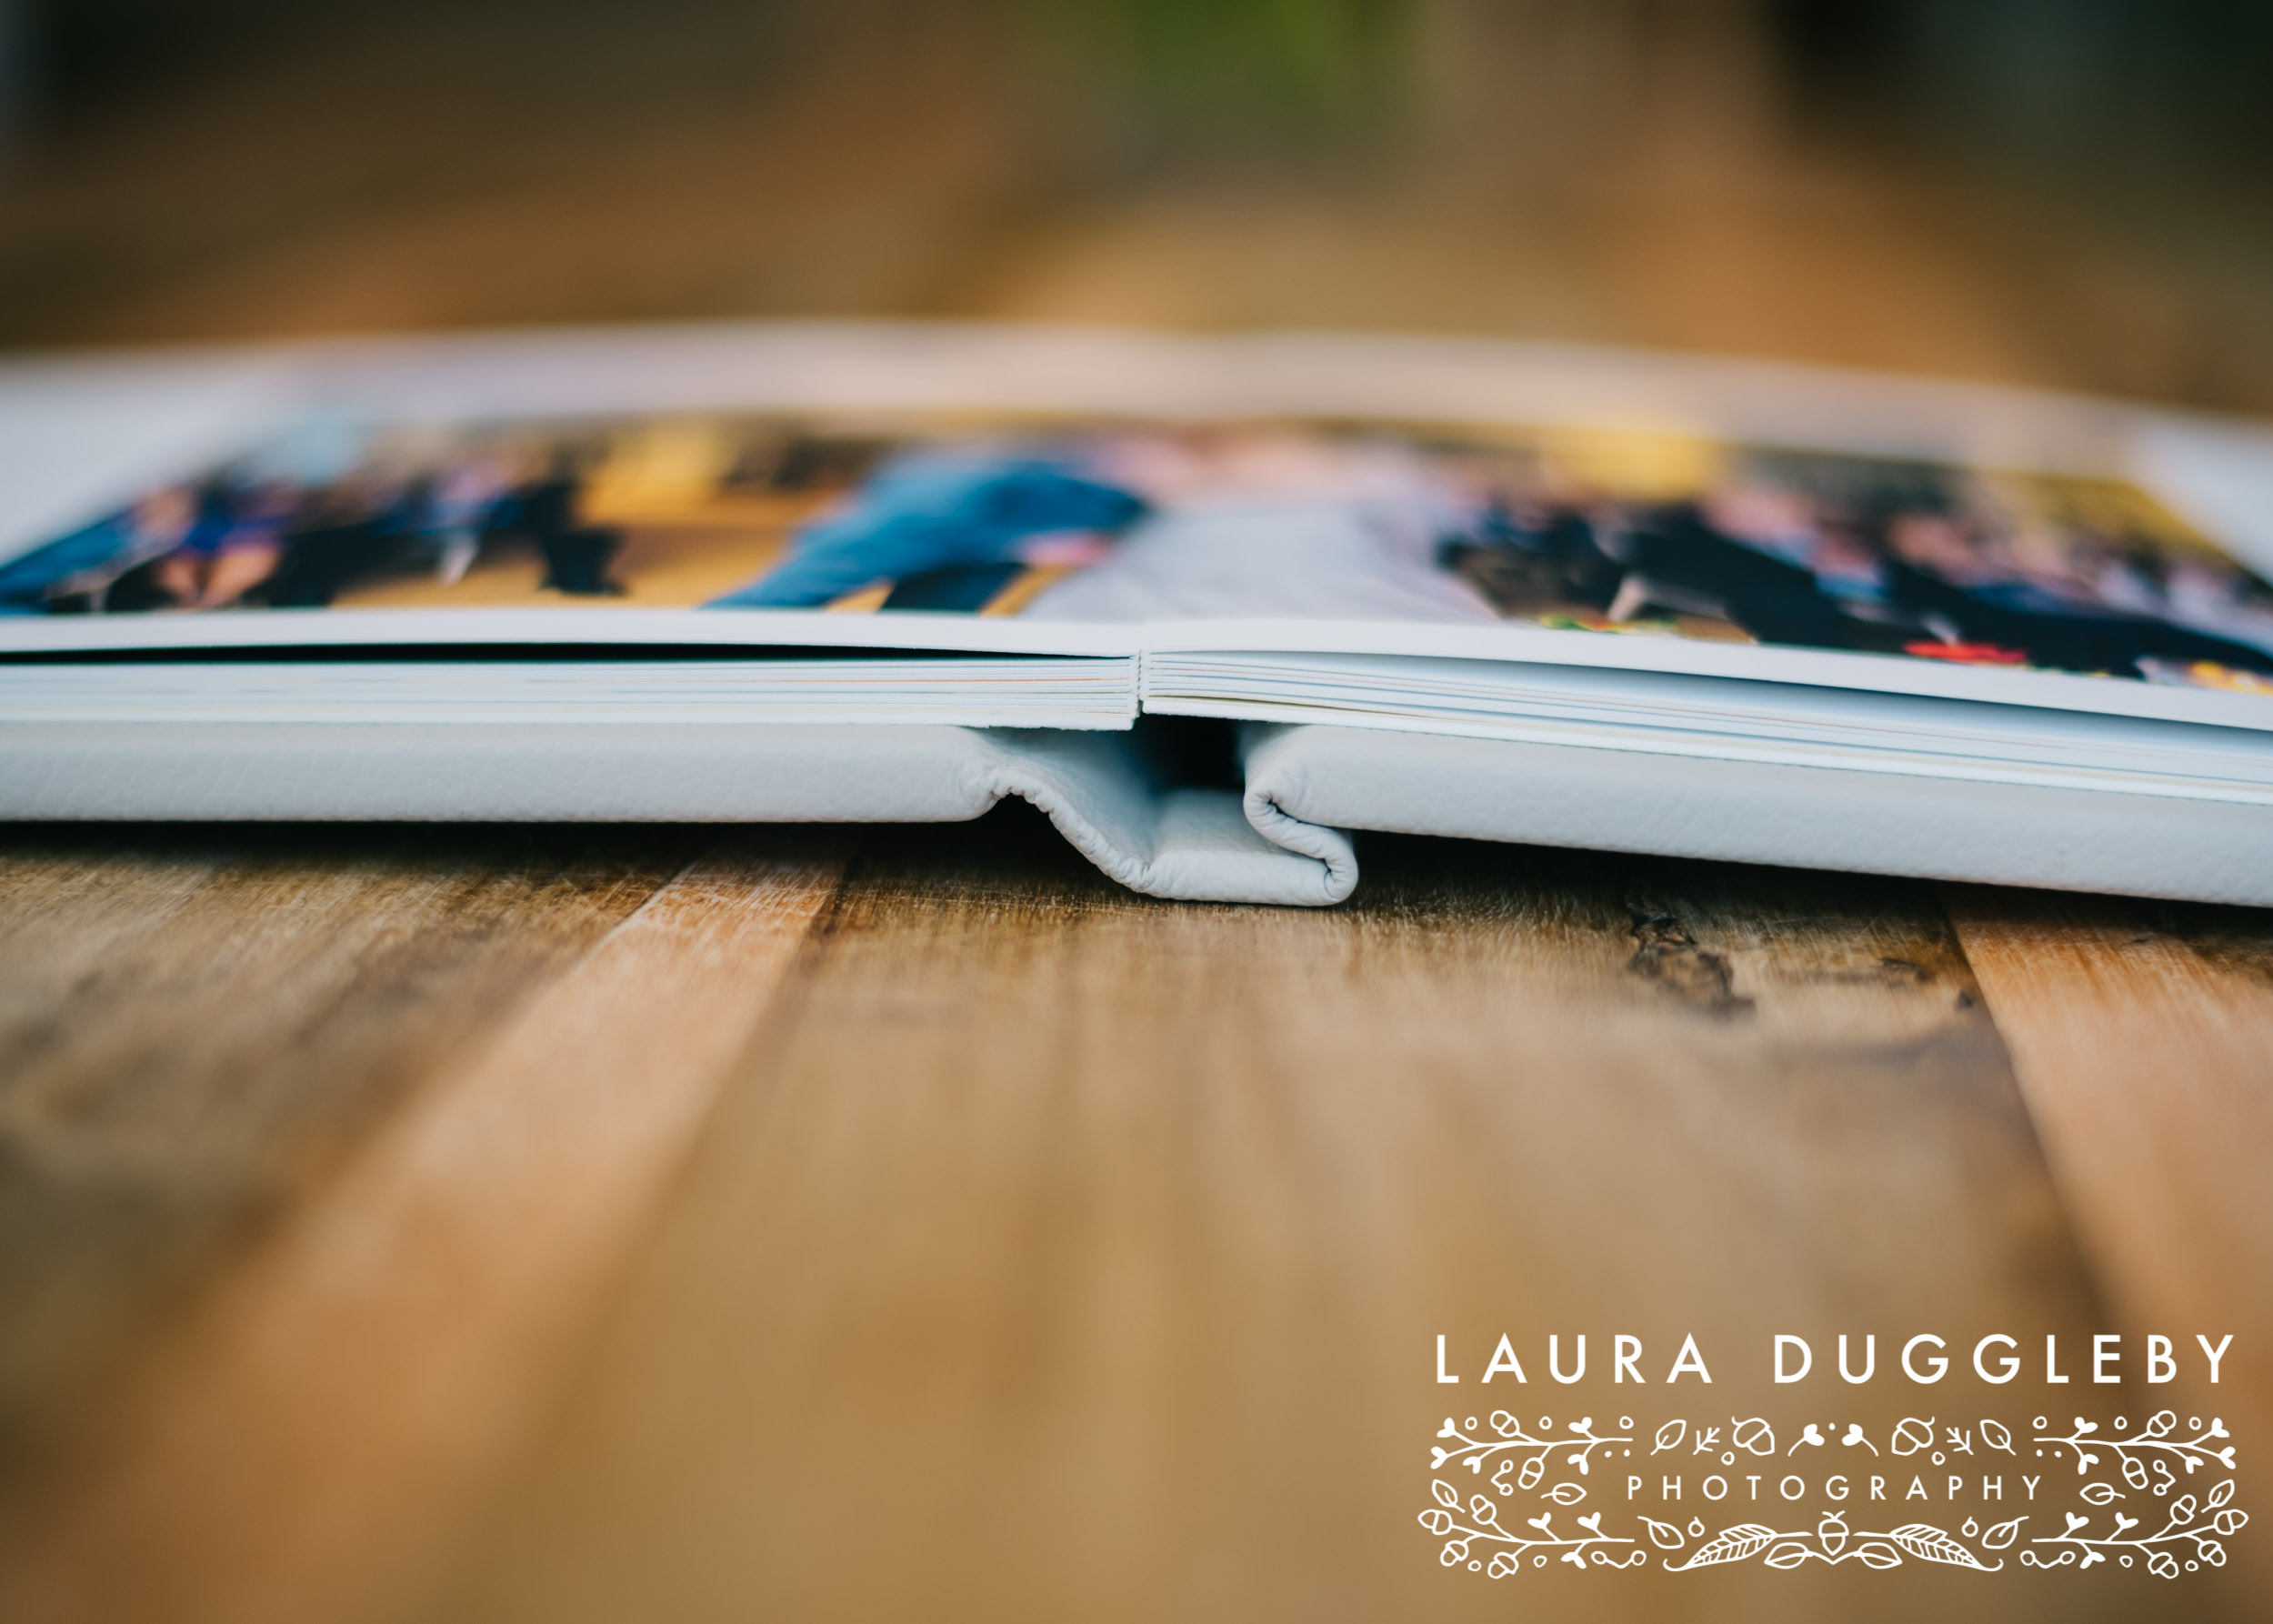 laura duggleby photography sample album-2.jpg